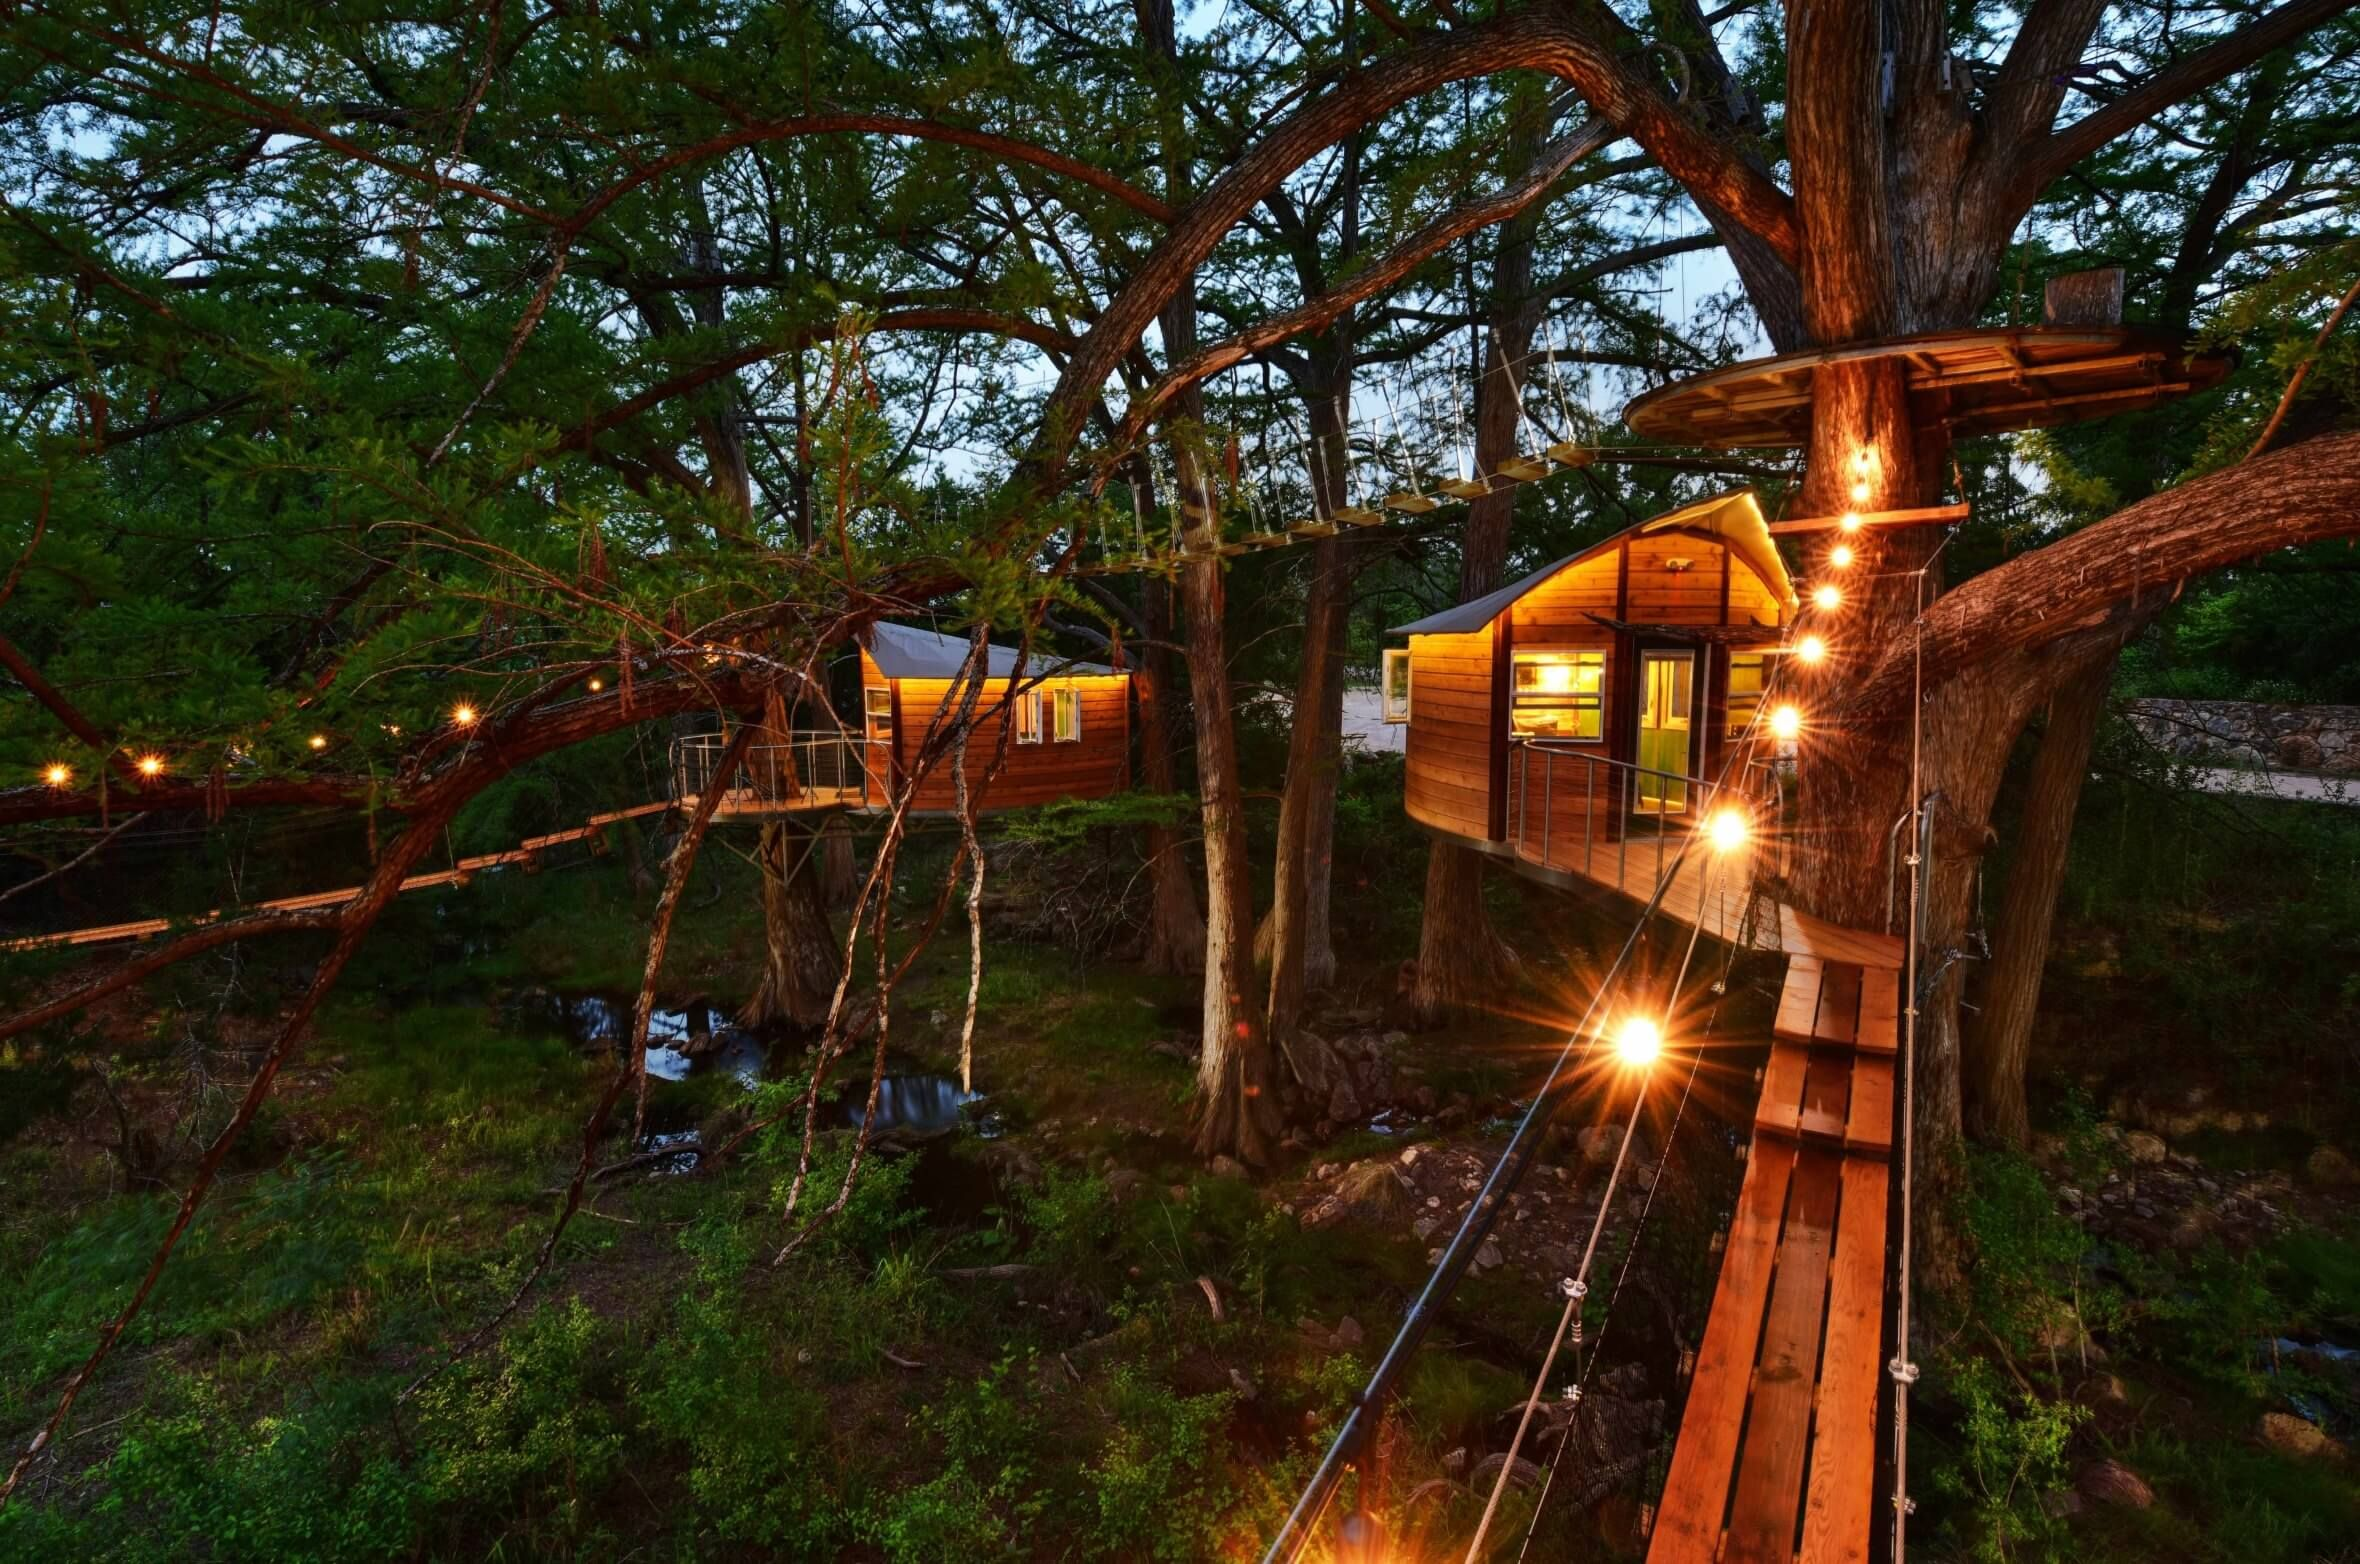 Cypress Valley Treehouse, Texas | Amazing treehouse getaway in Texas | Stay in an authentic treehouse @hockinghillstreehousecabins.com #treehouse #treehouseresort #treehousevacation #treehousegetaway